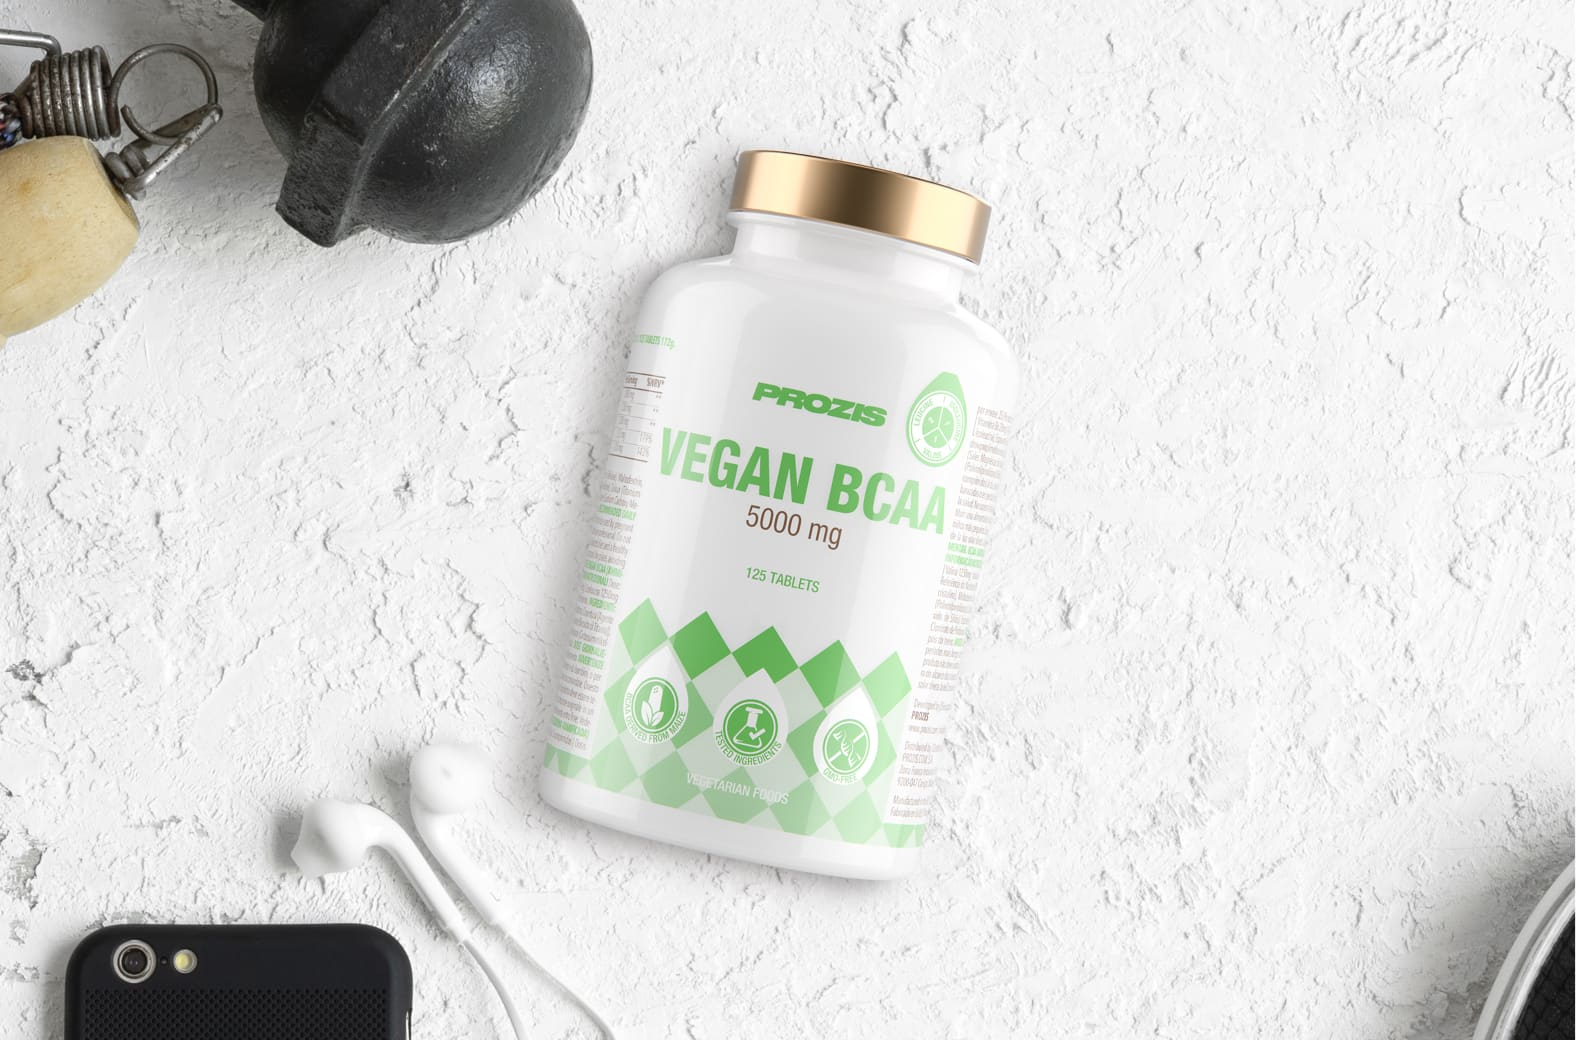 Vegan BCAA 5000 mg